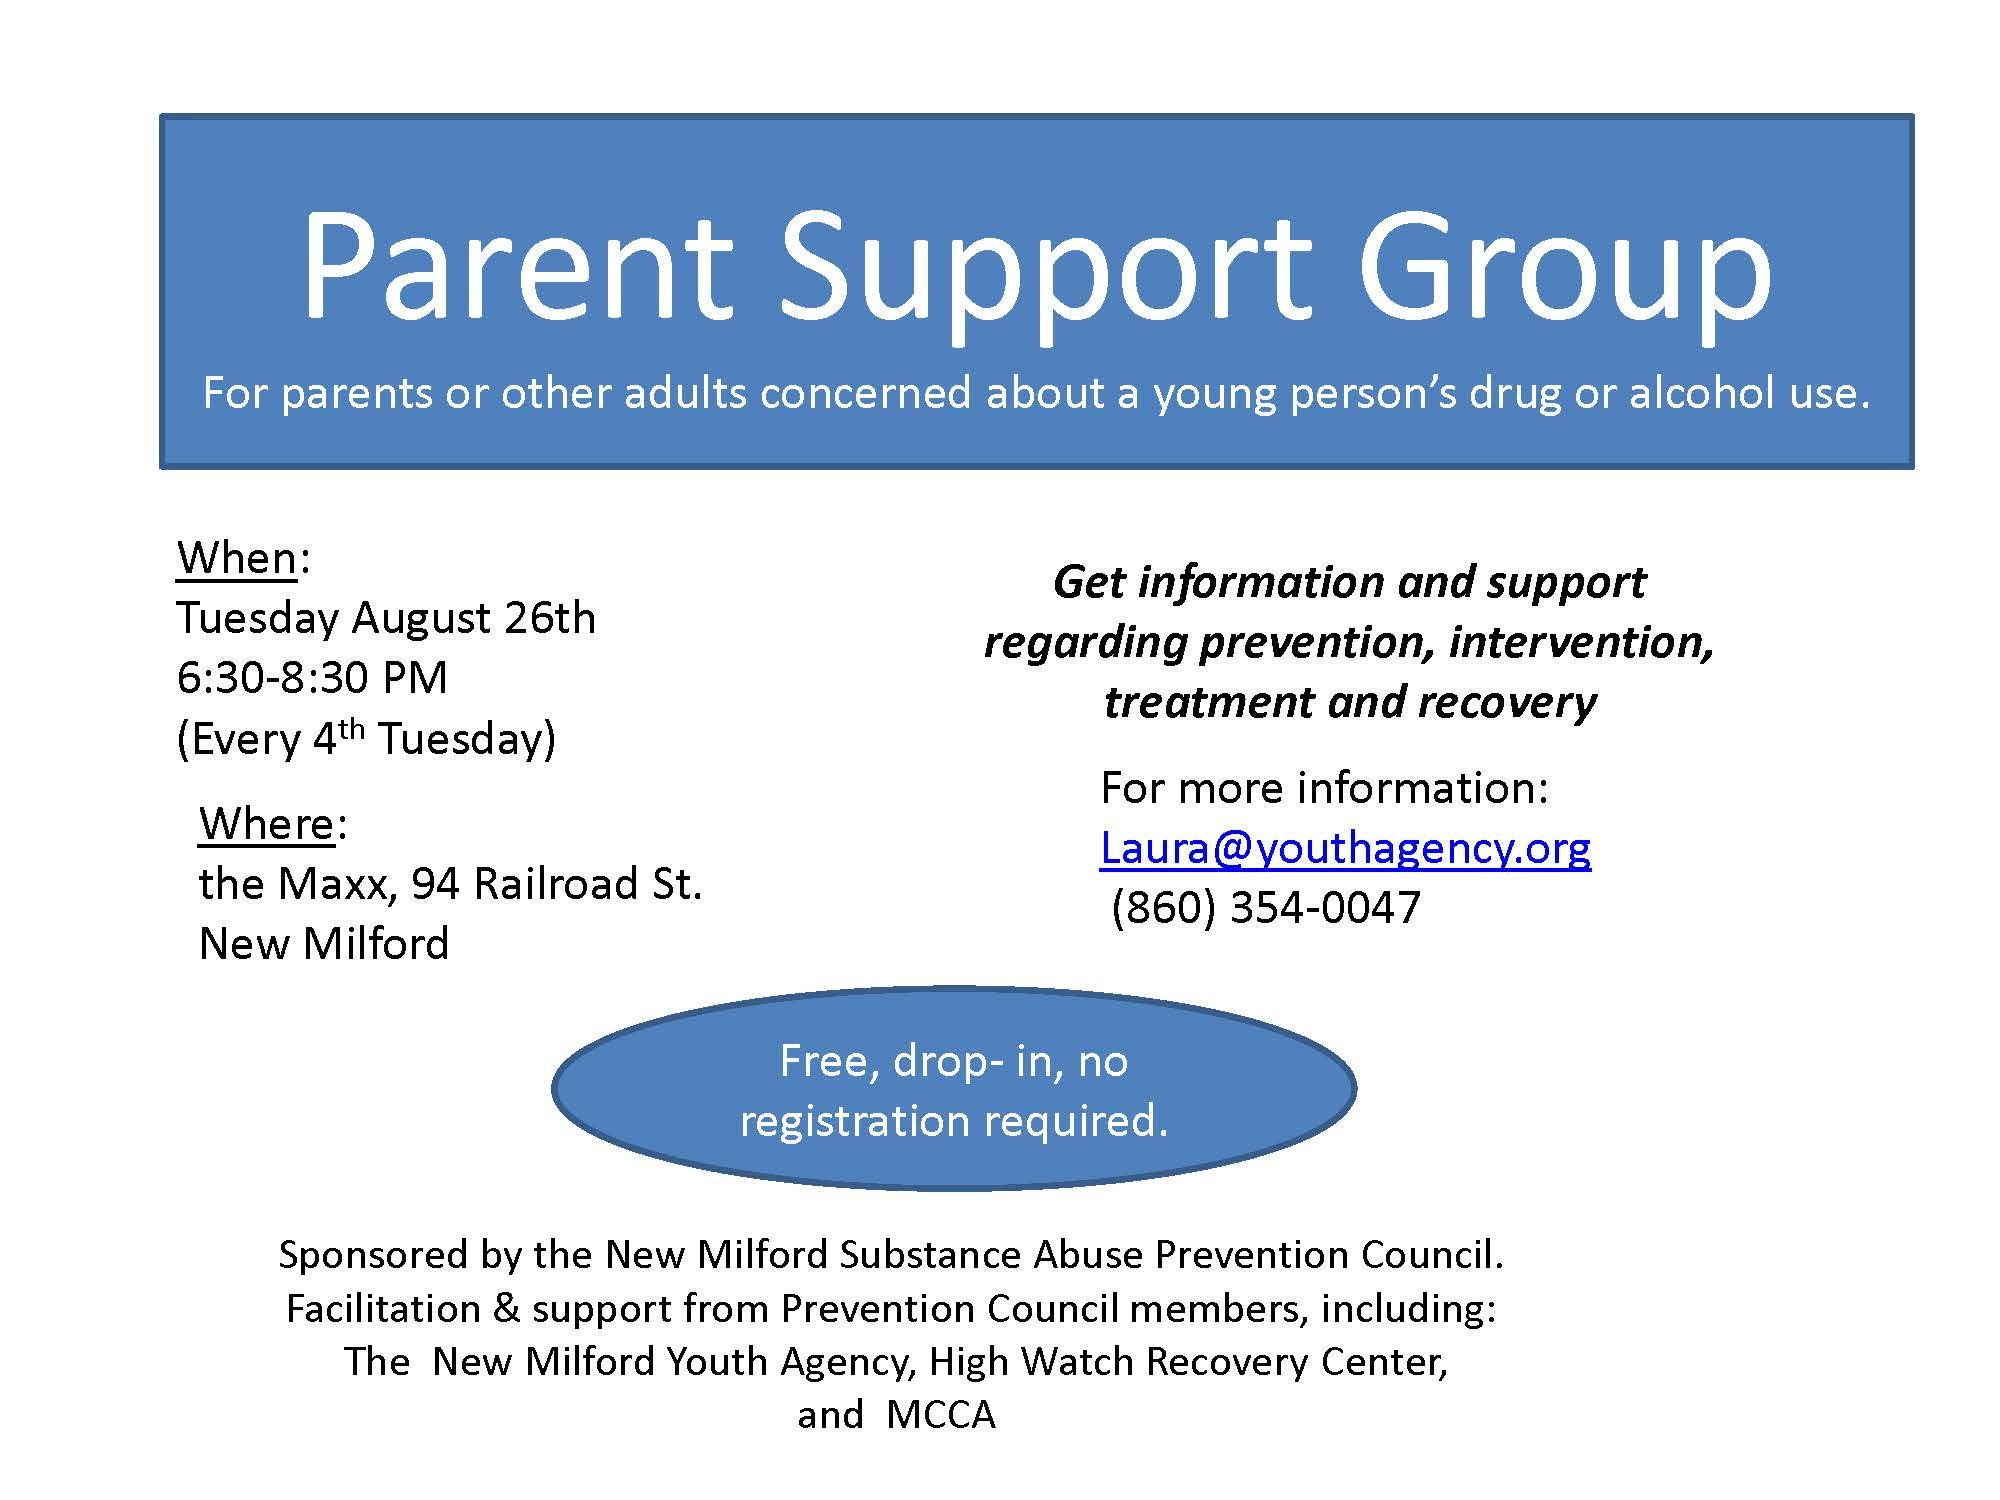 Parent Support Group August